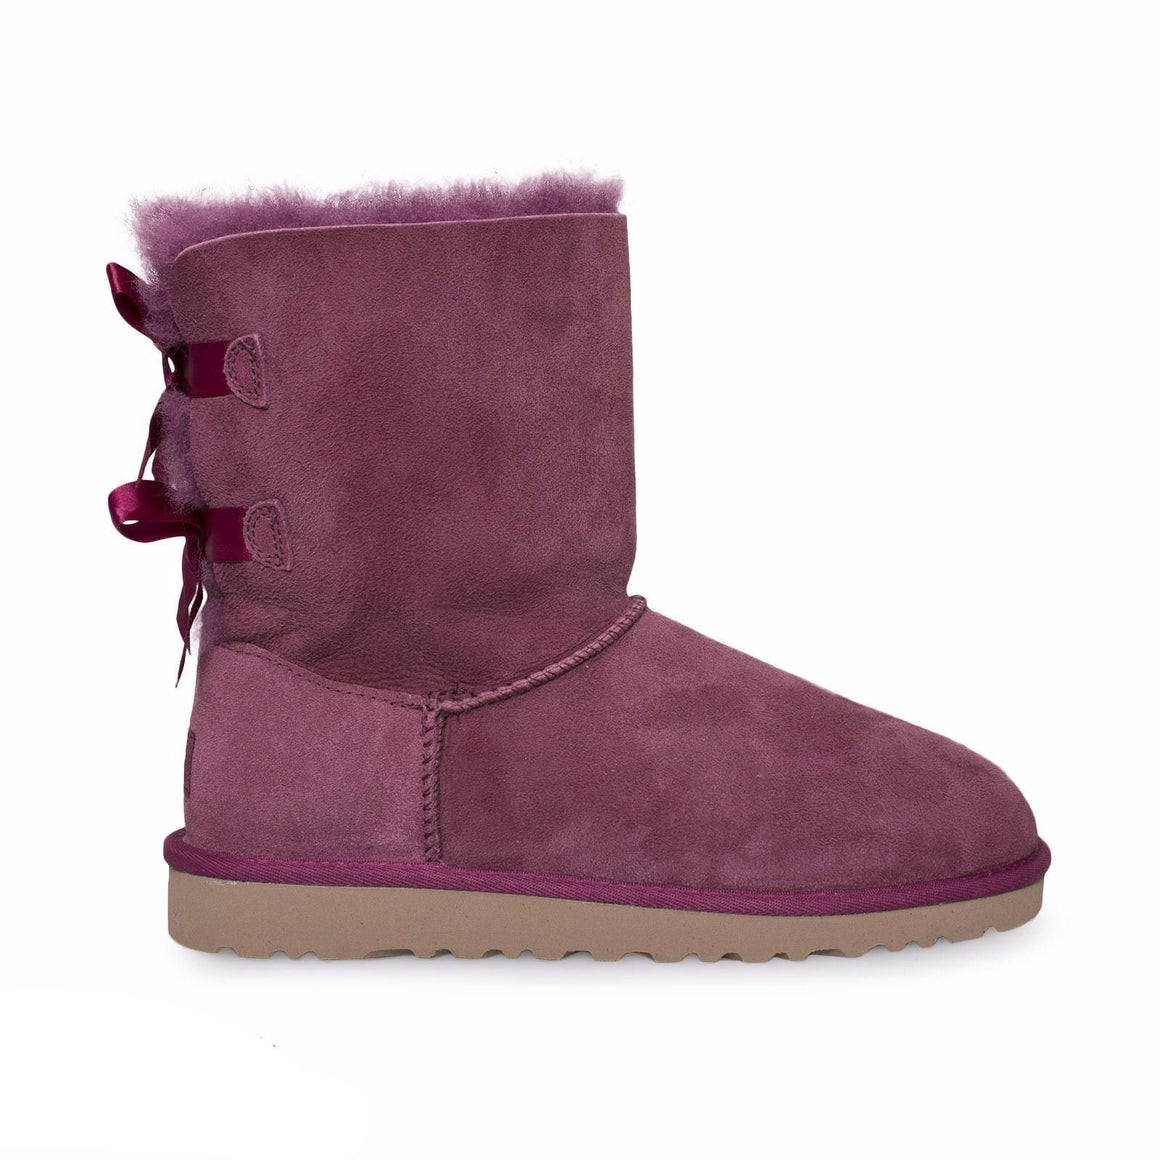 UGG Bailey Bow Bougainvillea Boots - Youth